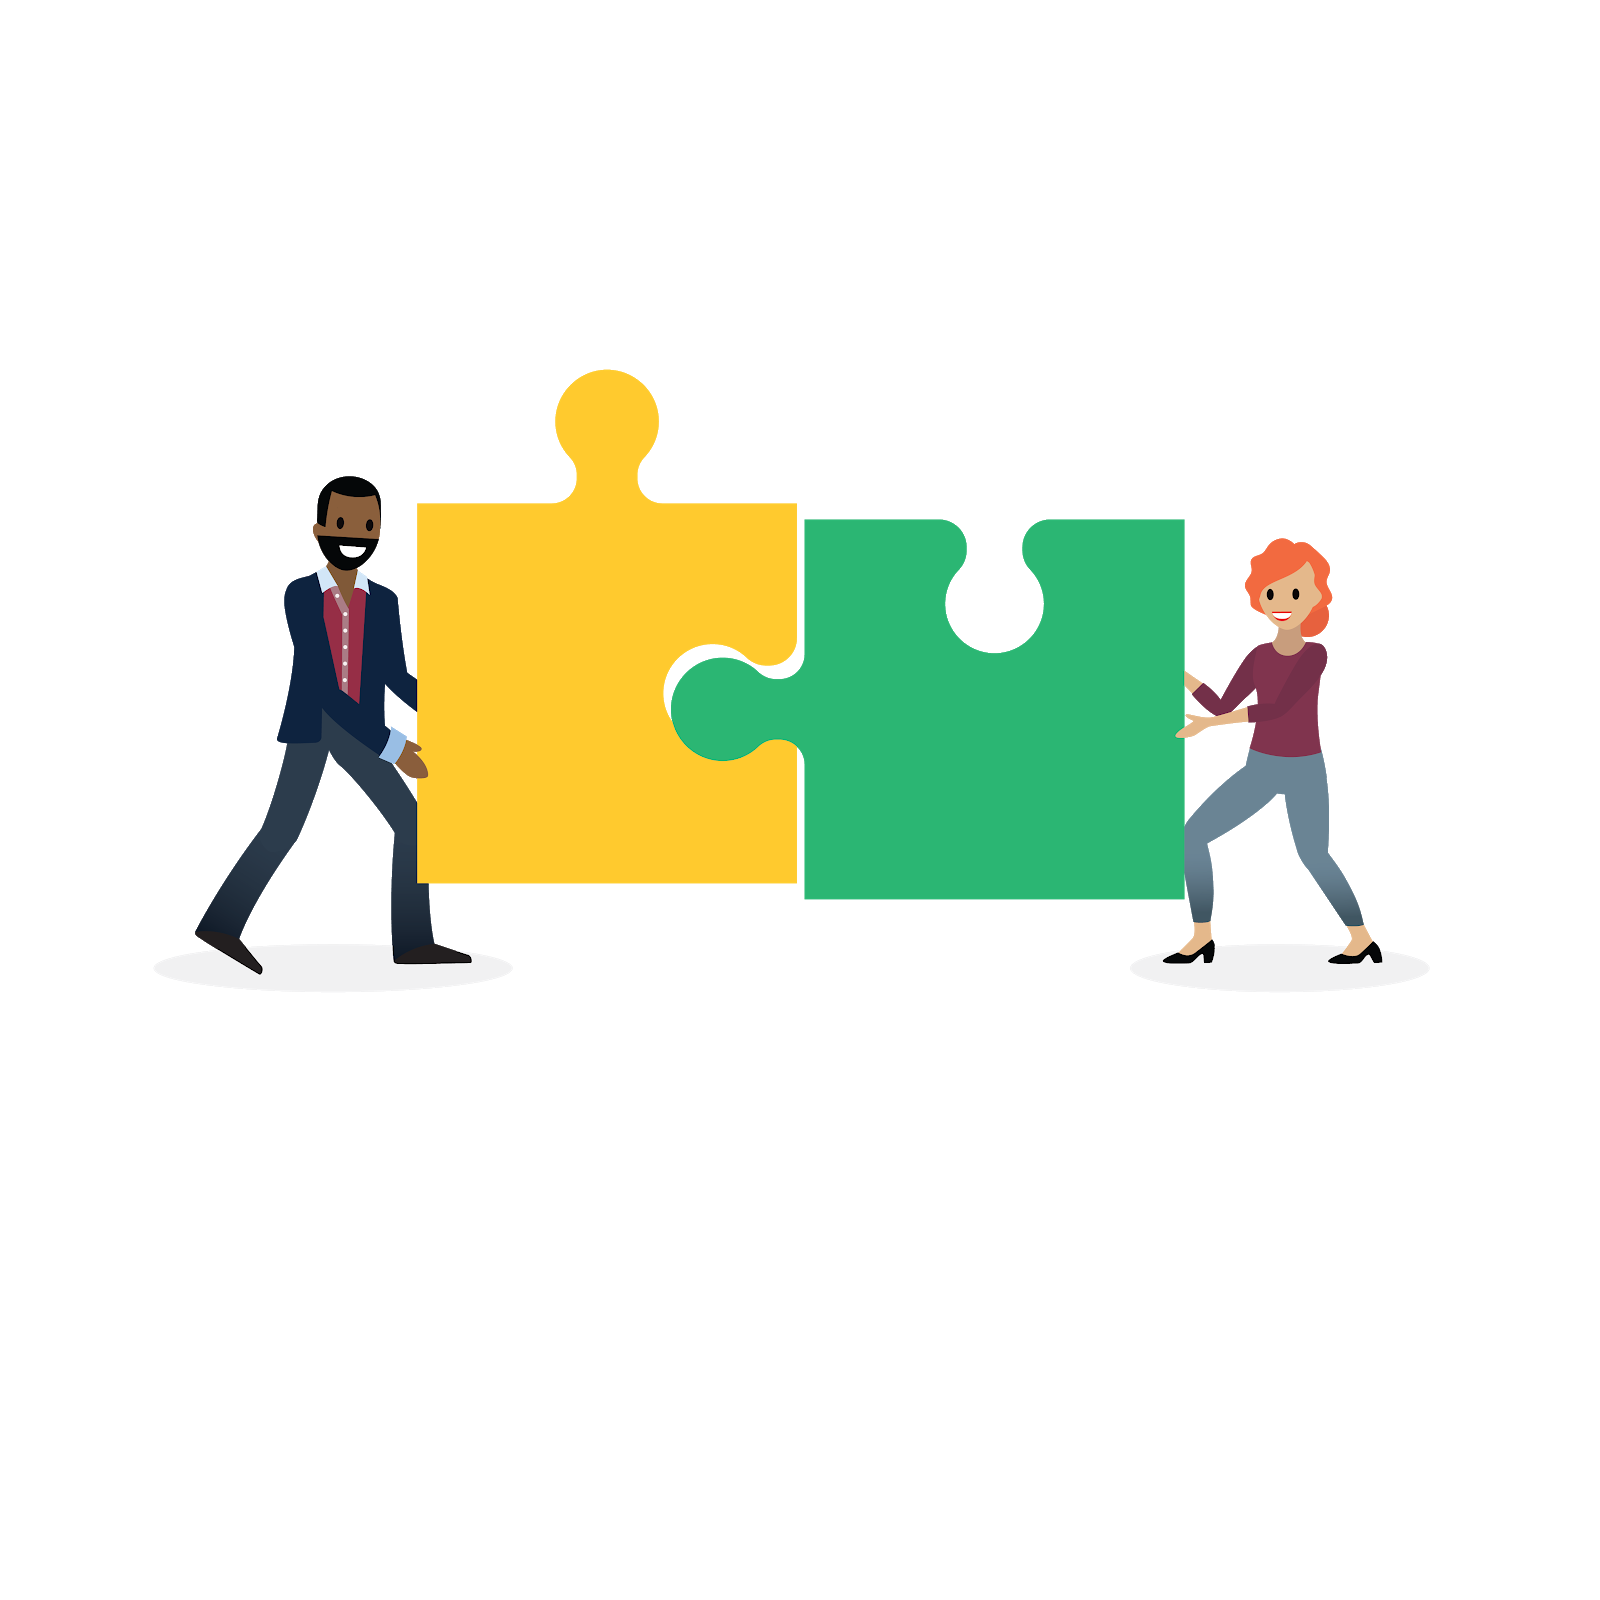 A mentor and mentee pushing together two oversized puzzle pieces to signify their partnership.